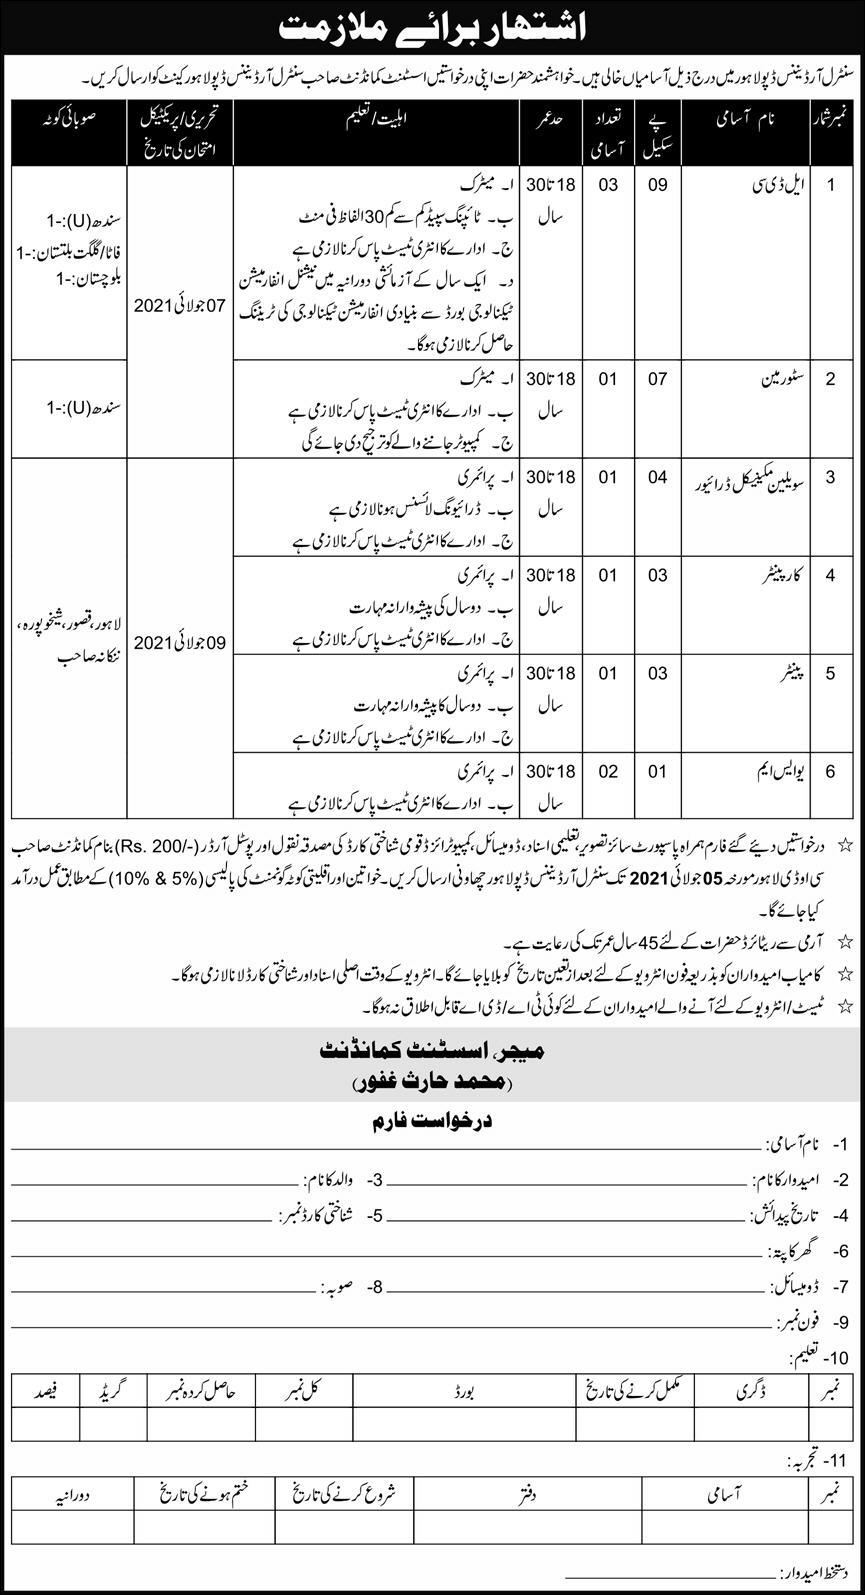 Join Pakistan Army COD Central Ordnance Depot Lahore as LDC, Store Man, etc | Pak Army Jobs in June 2021